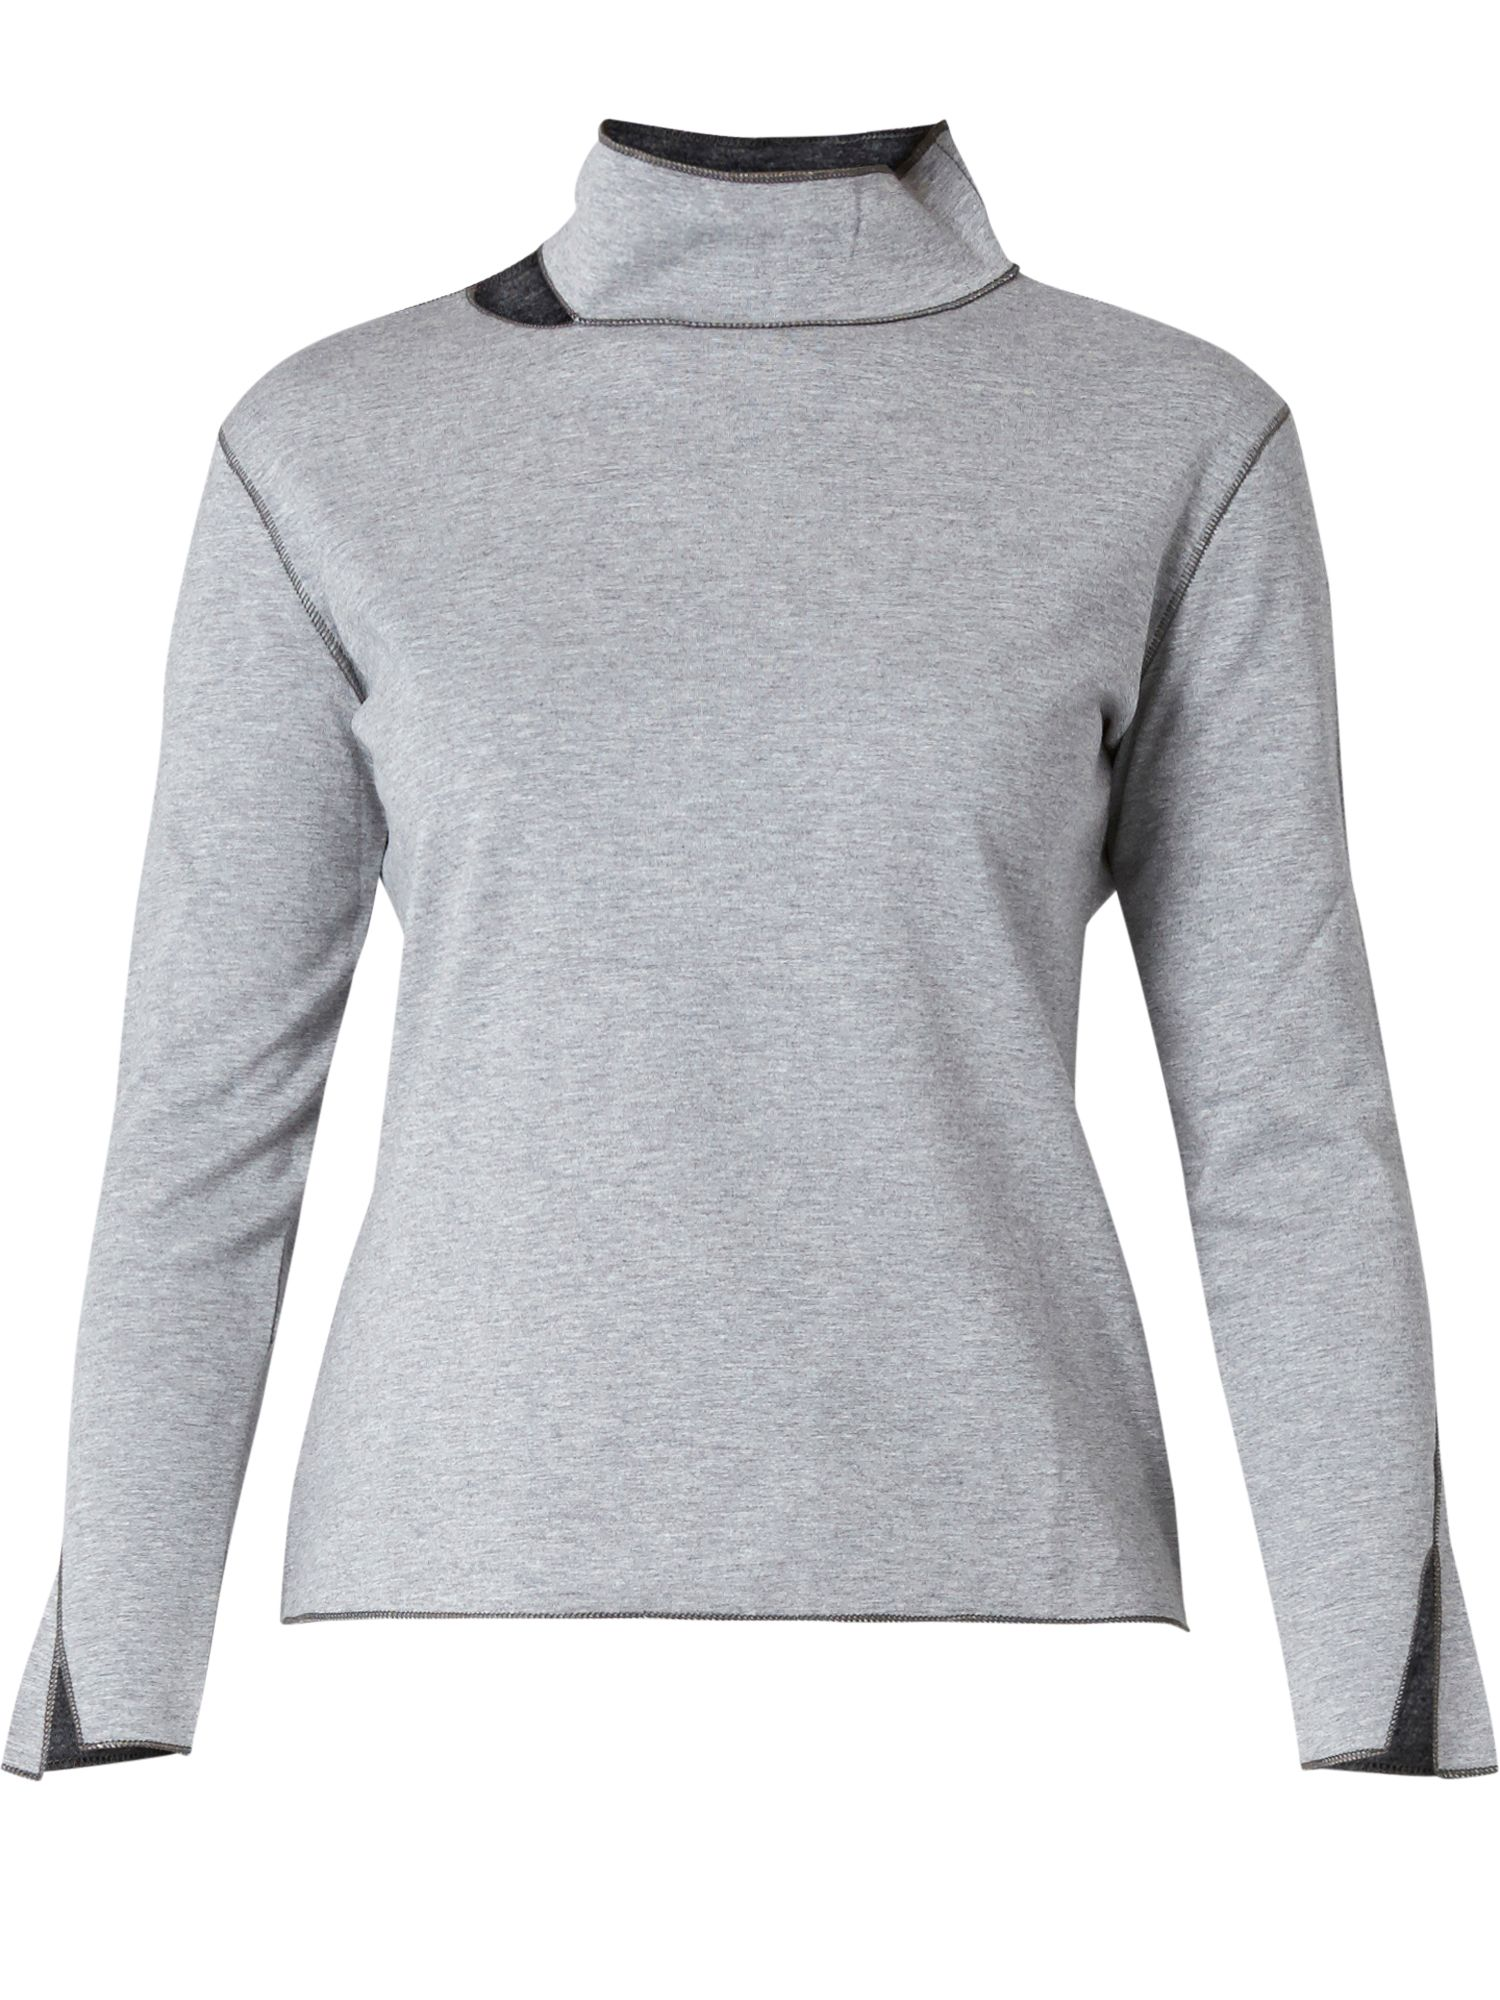 Helen McAlinden De Constructed Top, Grey